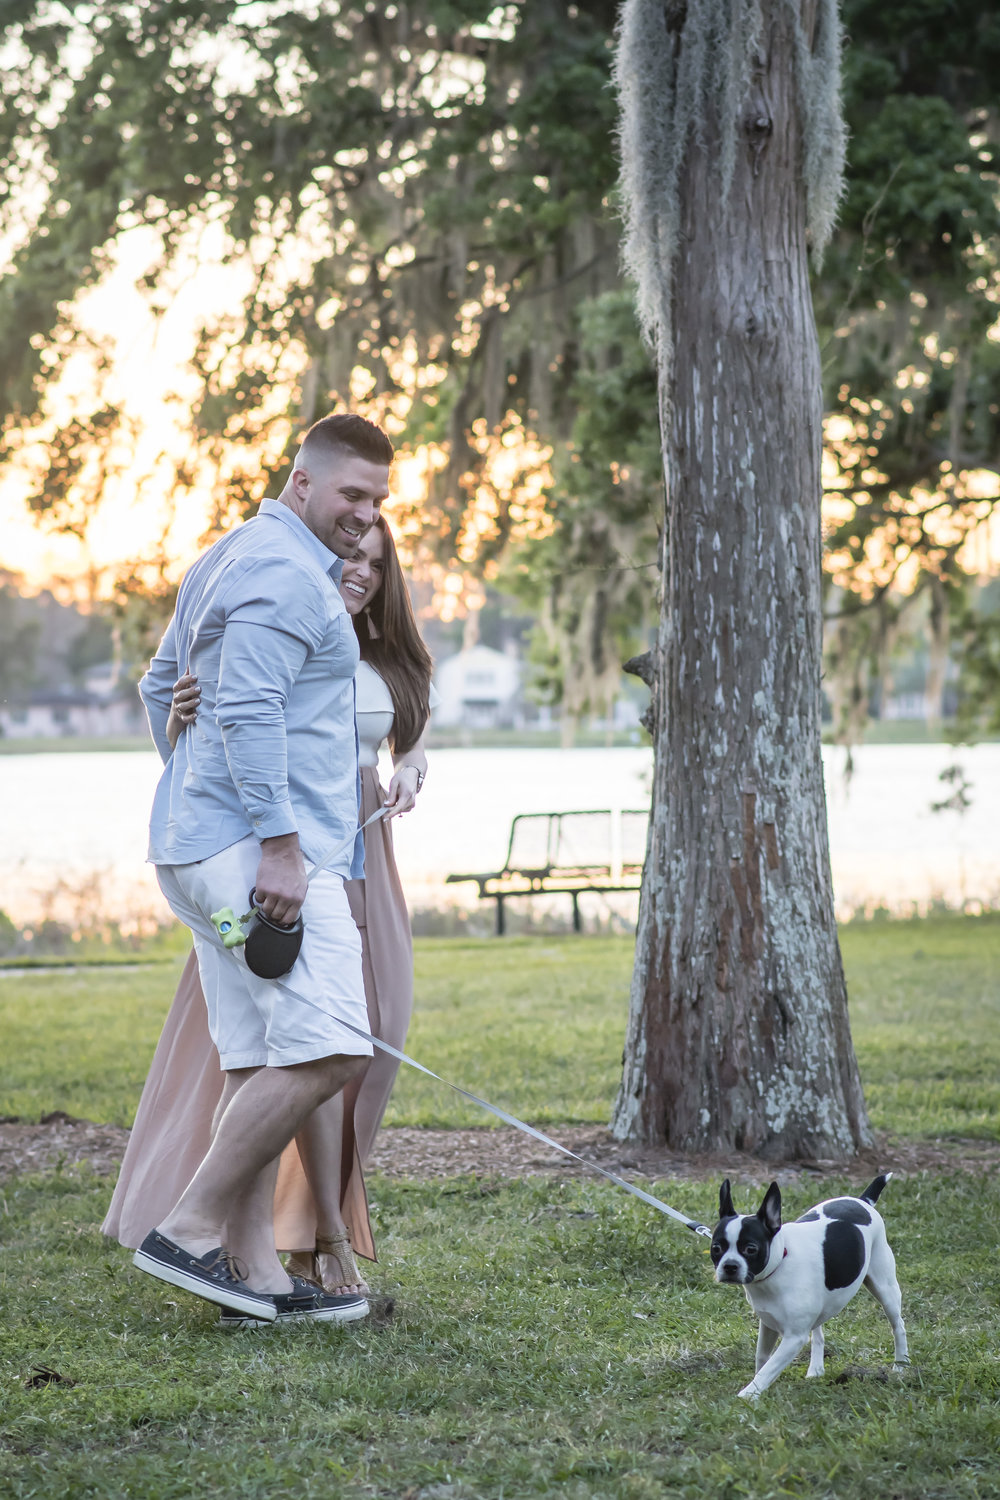 cypress-grove-park-engagement-session-orlando-photographer-yanitza-ninett-24.jpg